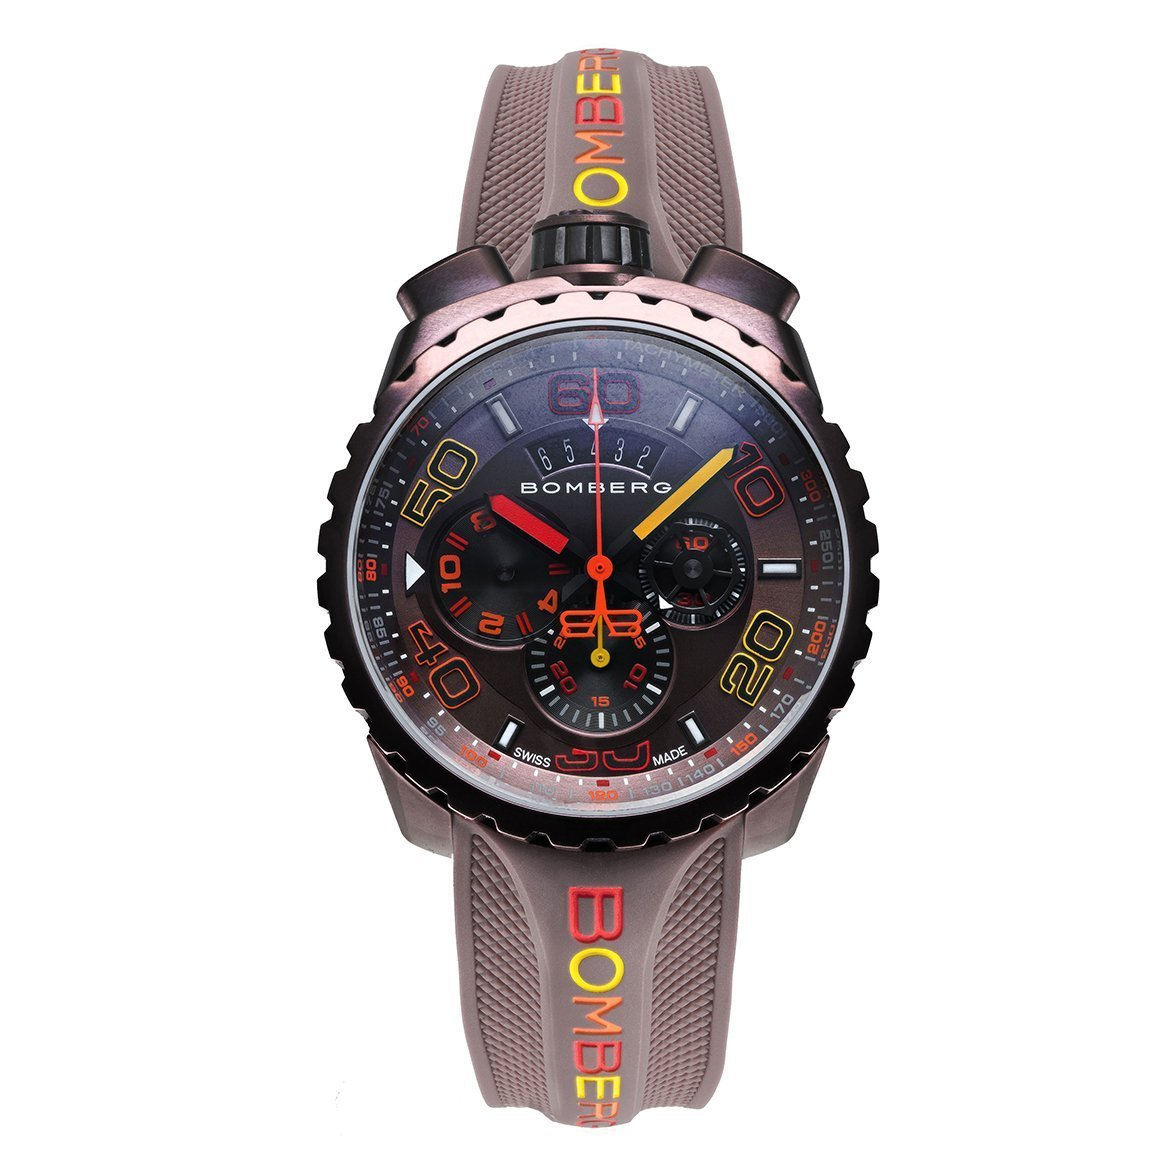 Bomberg BOLT-68 Chronograph Watch Brown PVD - Watches & Crystals